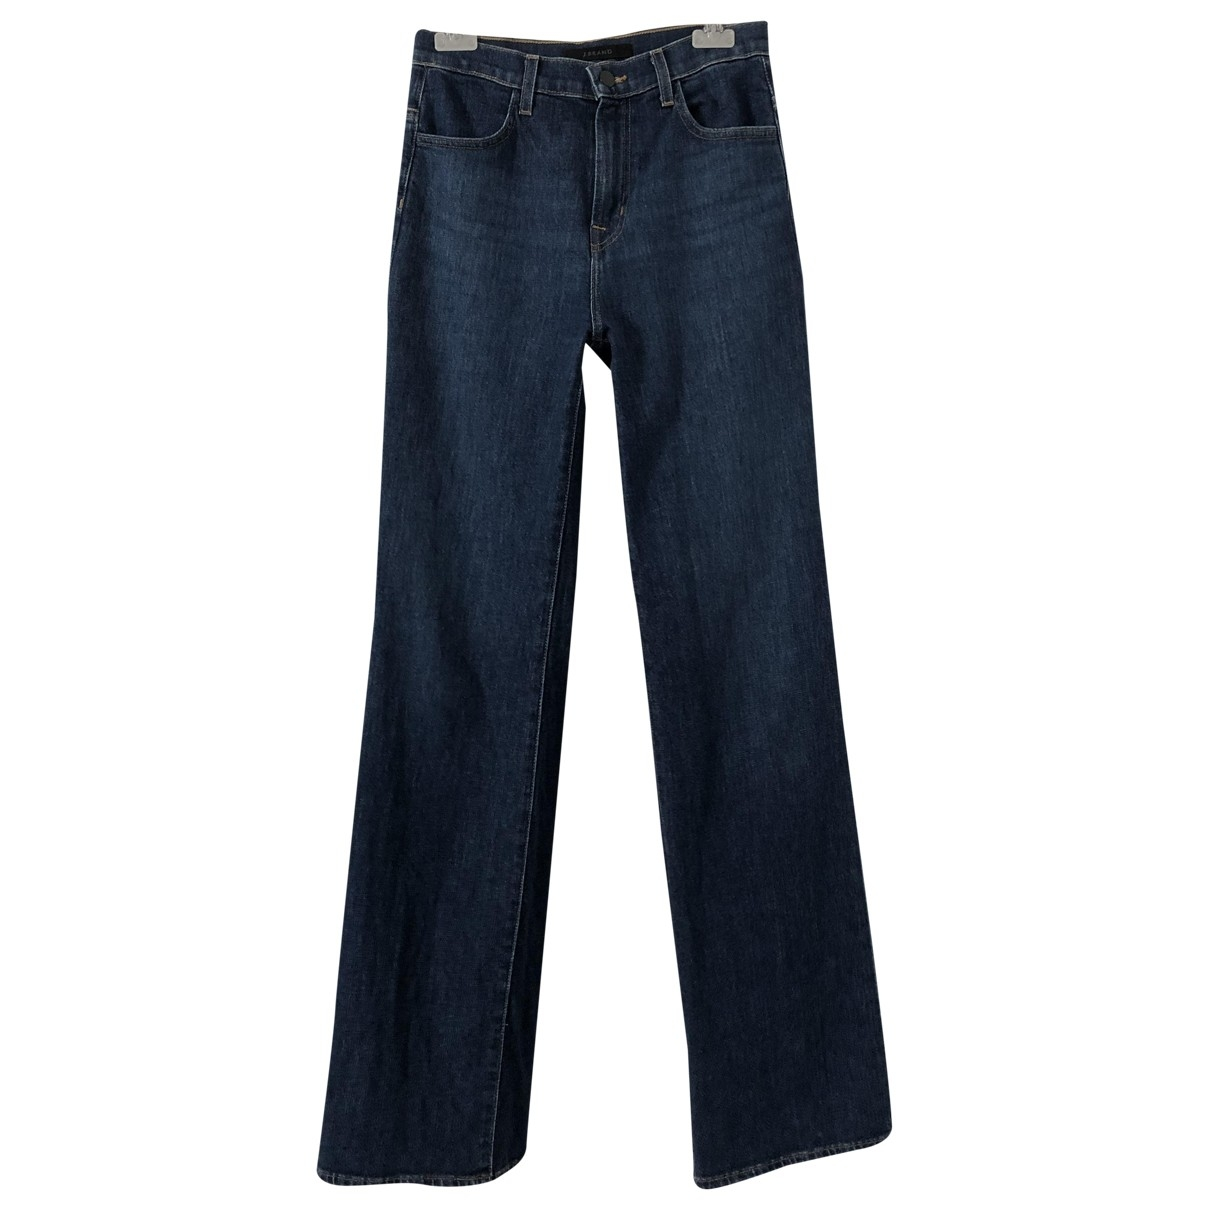 J Brand \N Blue Cotton - elasthane Jeans for Women 25 US